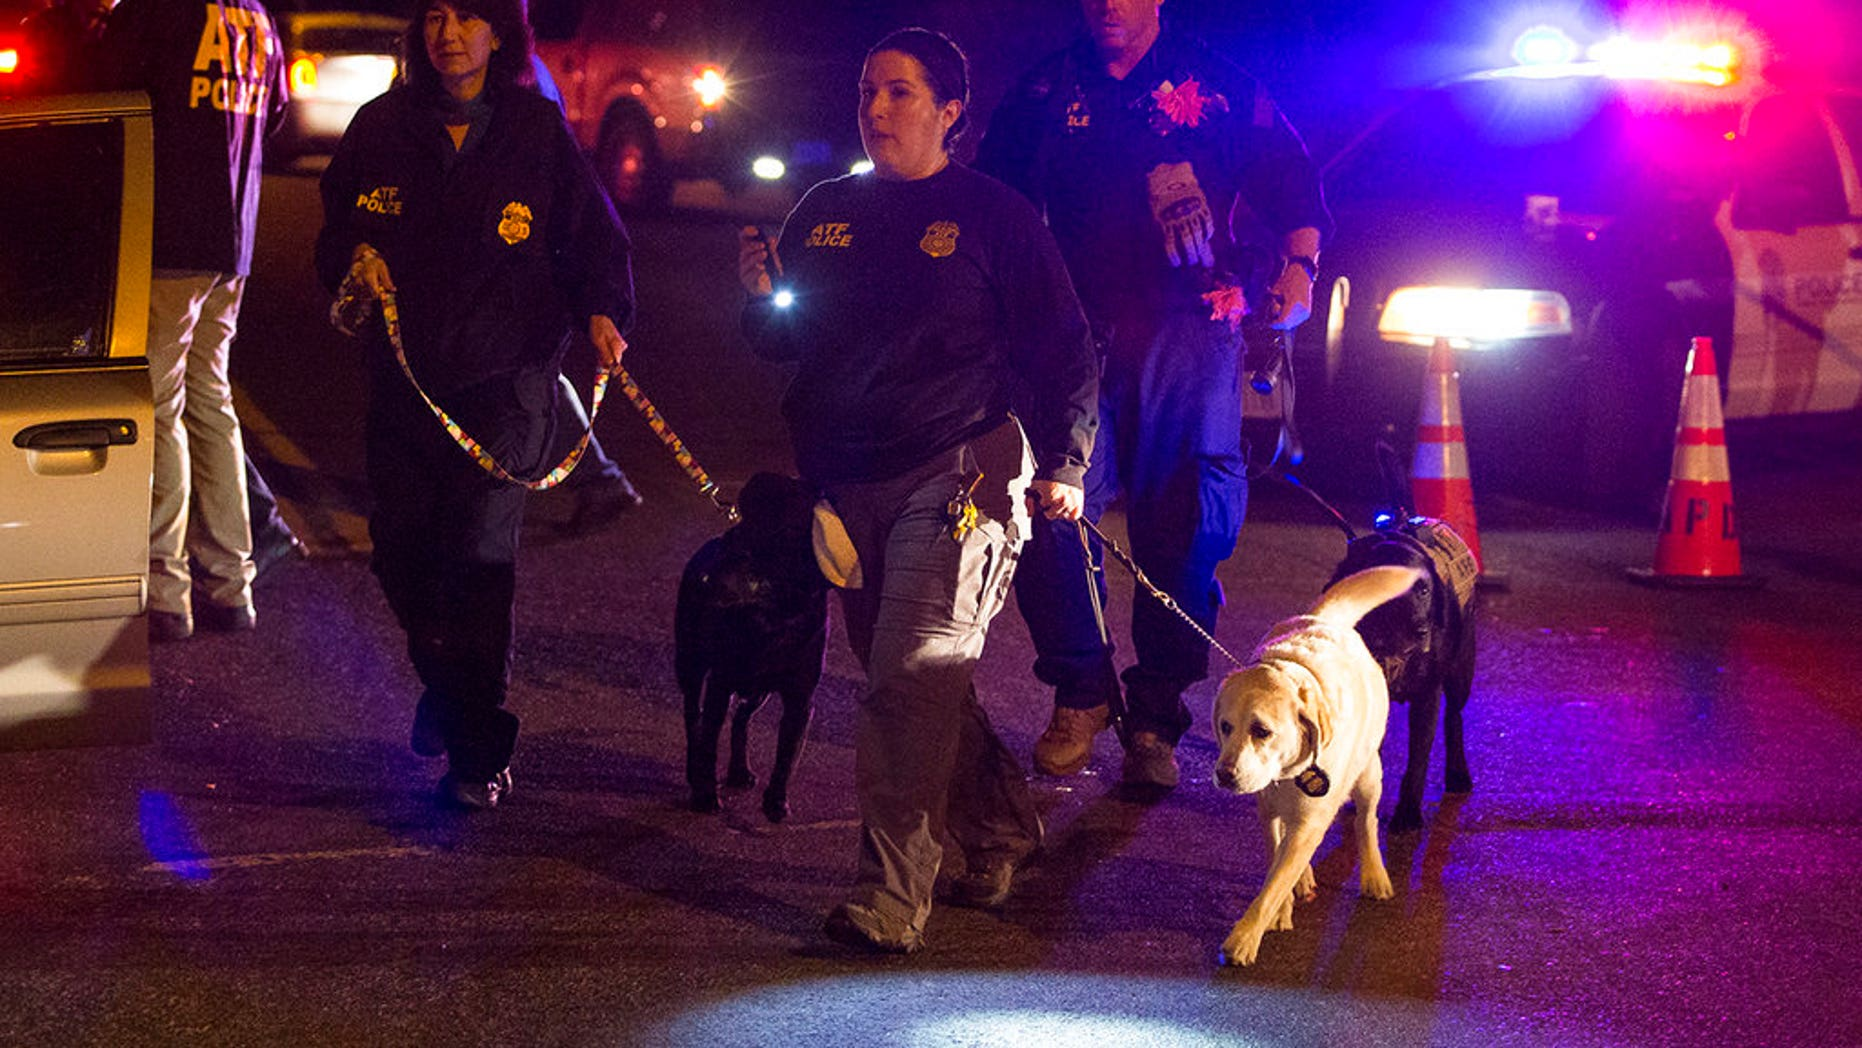 Police dogs and their handlers deploy at the scene of an explosion in southwest Austin, Texas, Sunday, March 18, 2018. Injuries were reported in the explosion, this one coming after three package bombs detonated earlier in the month in other areas of the city, killing two people and injuring two others. (Nick Wagner/Austin American-Statesman via AP)